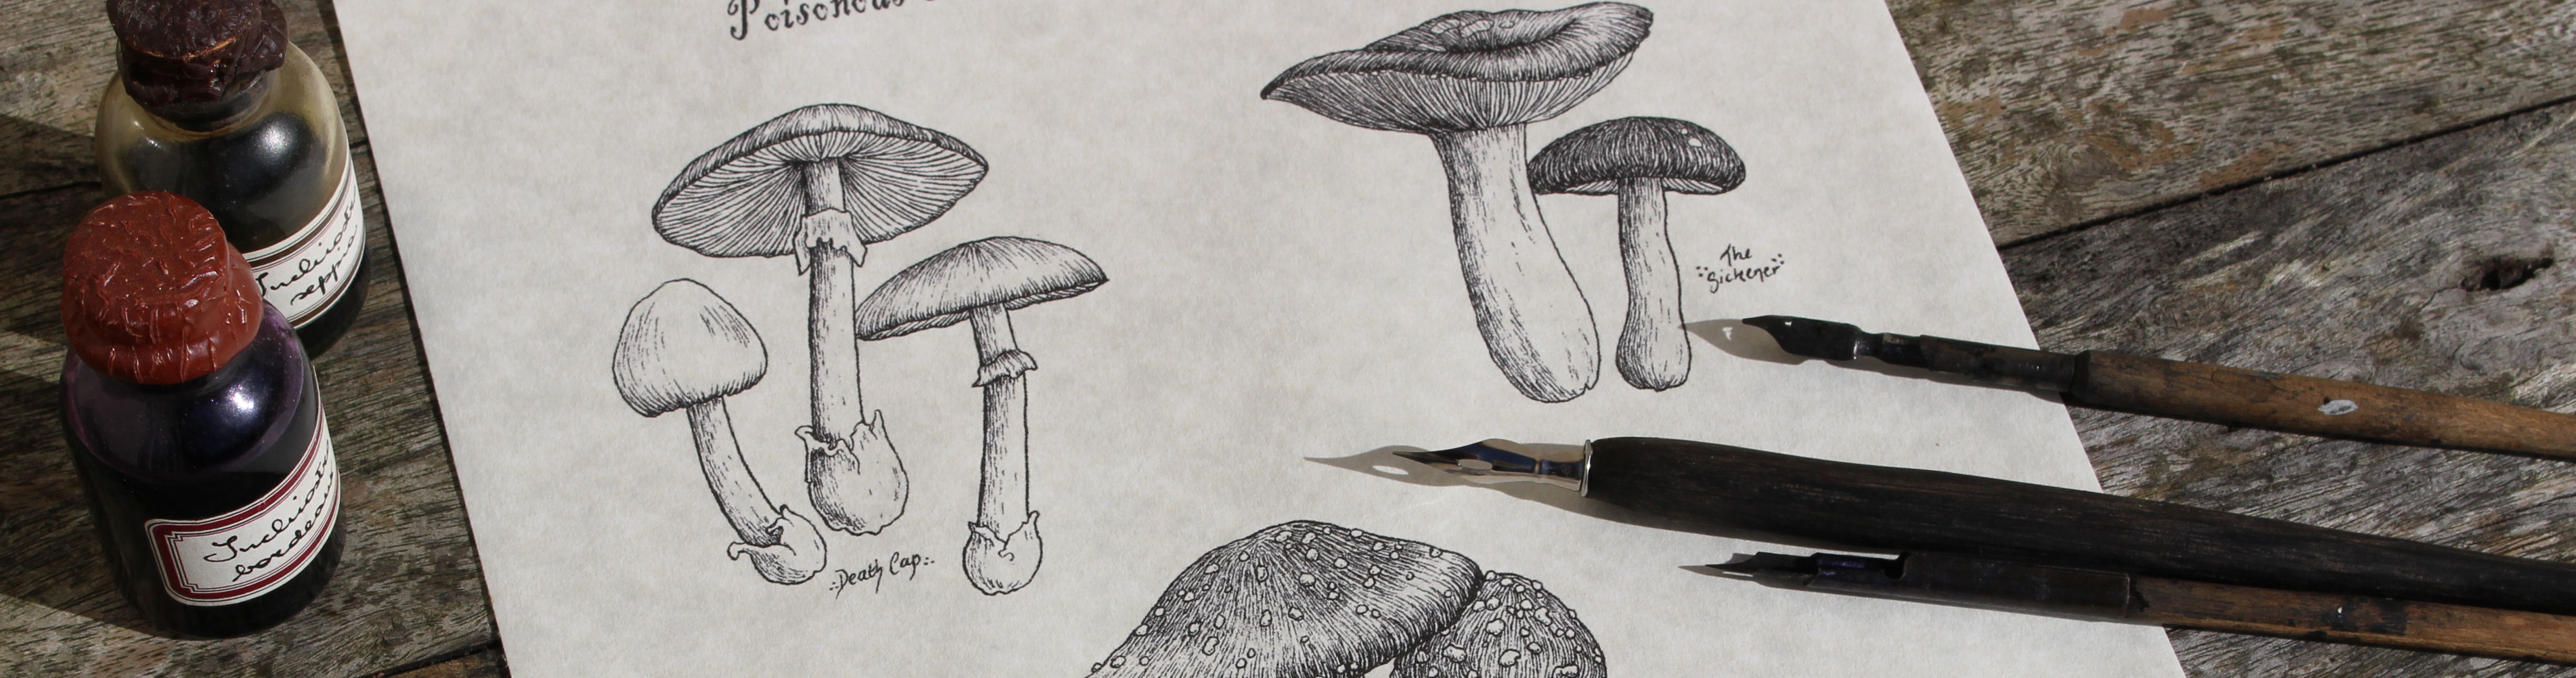 Toadstool-traditional-dip-pen-and-ink-drawing-by-Michelle-Maiden-banner